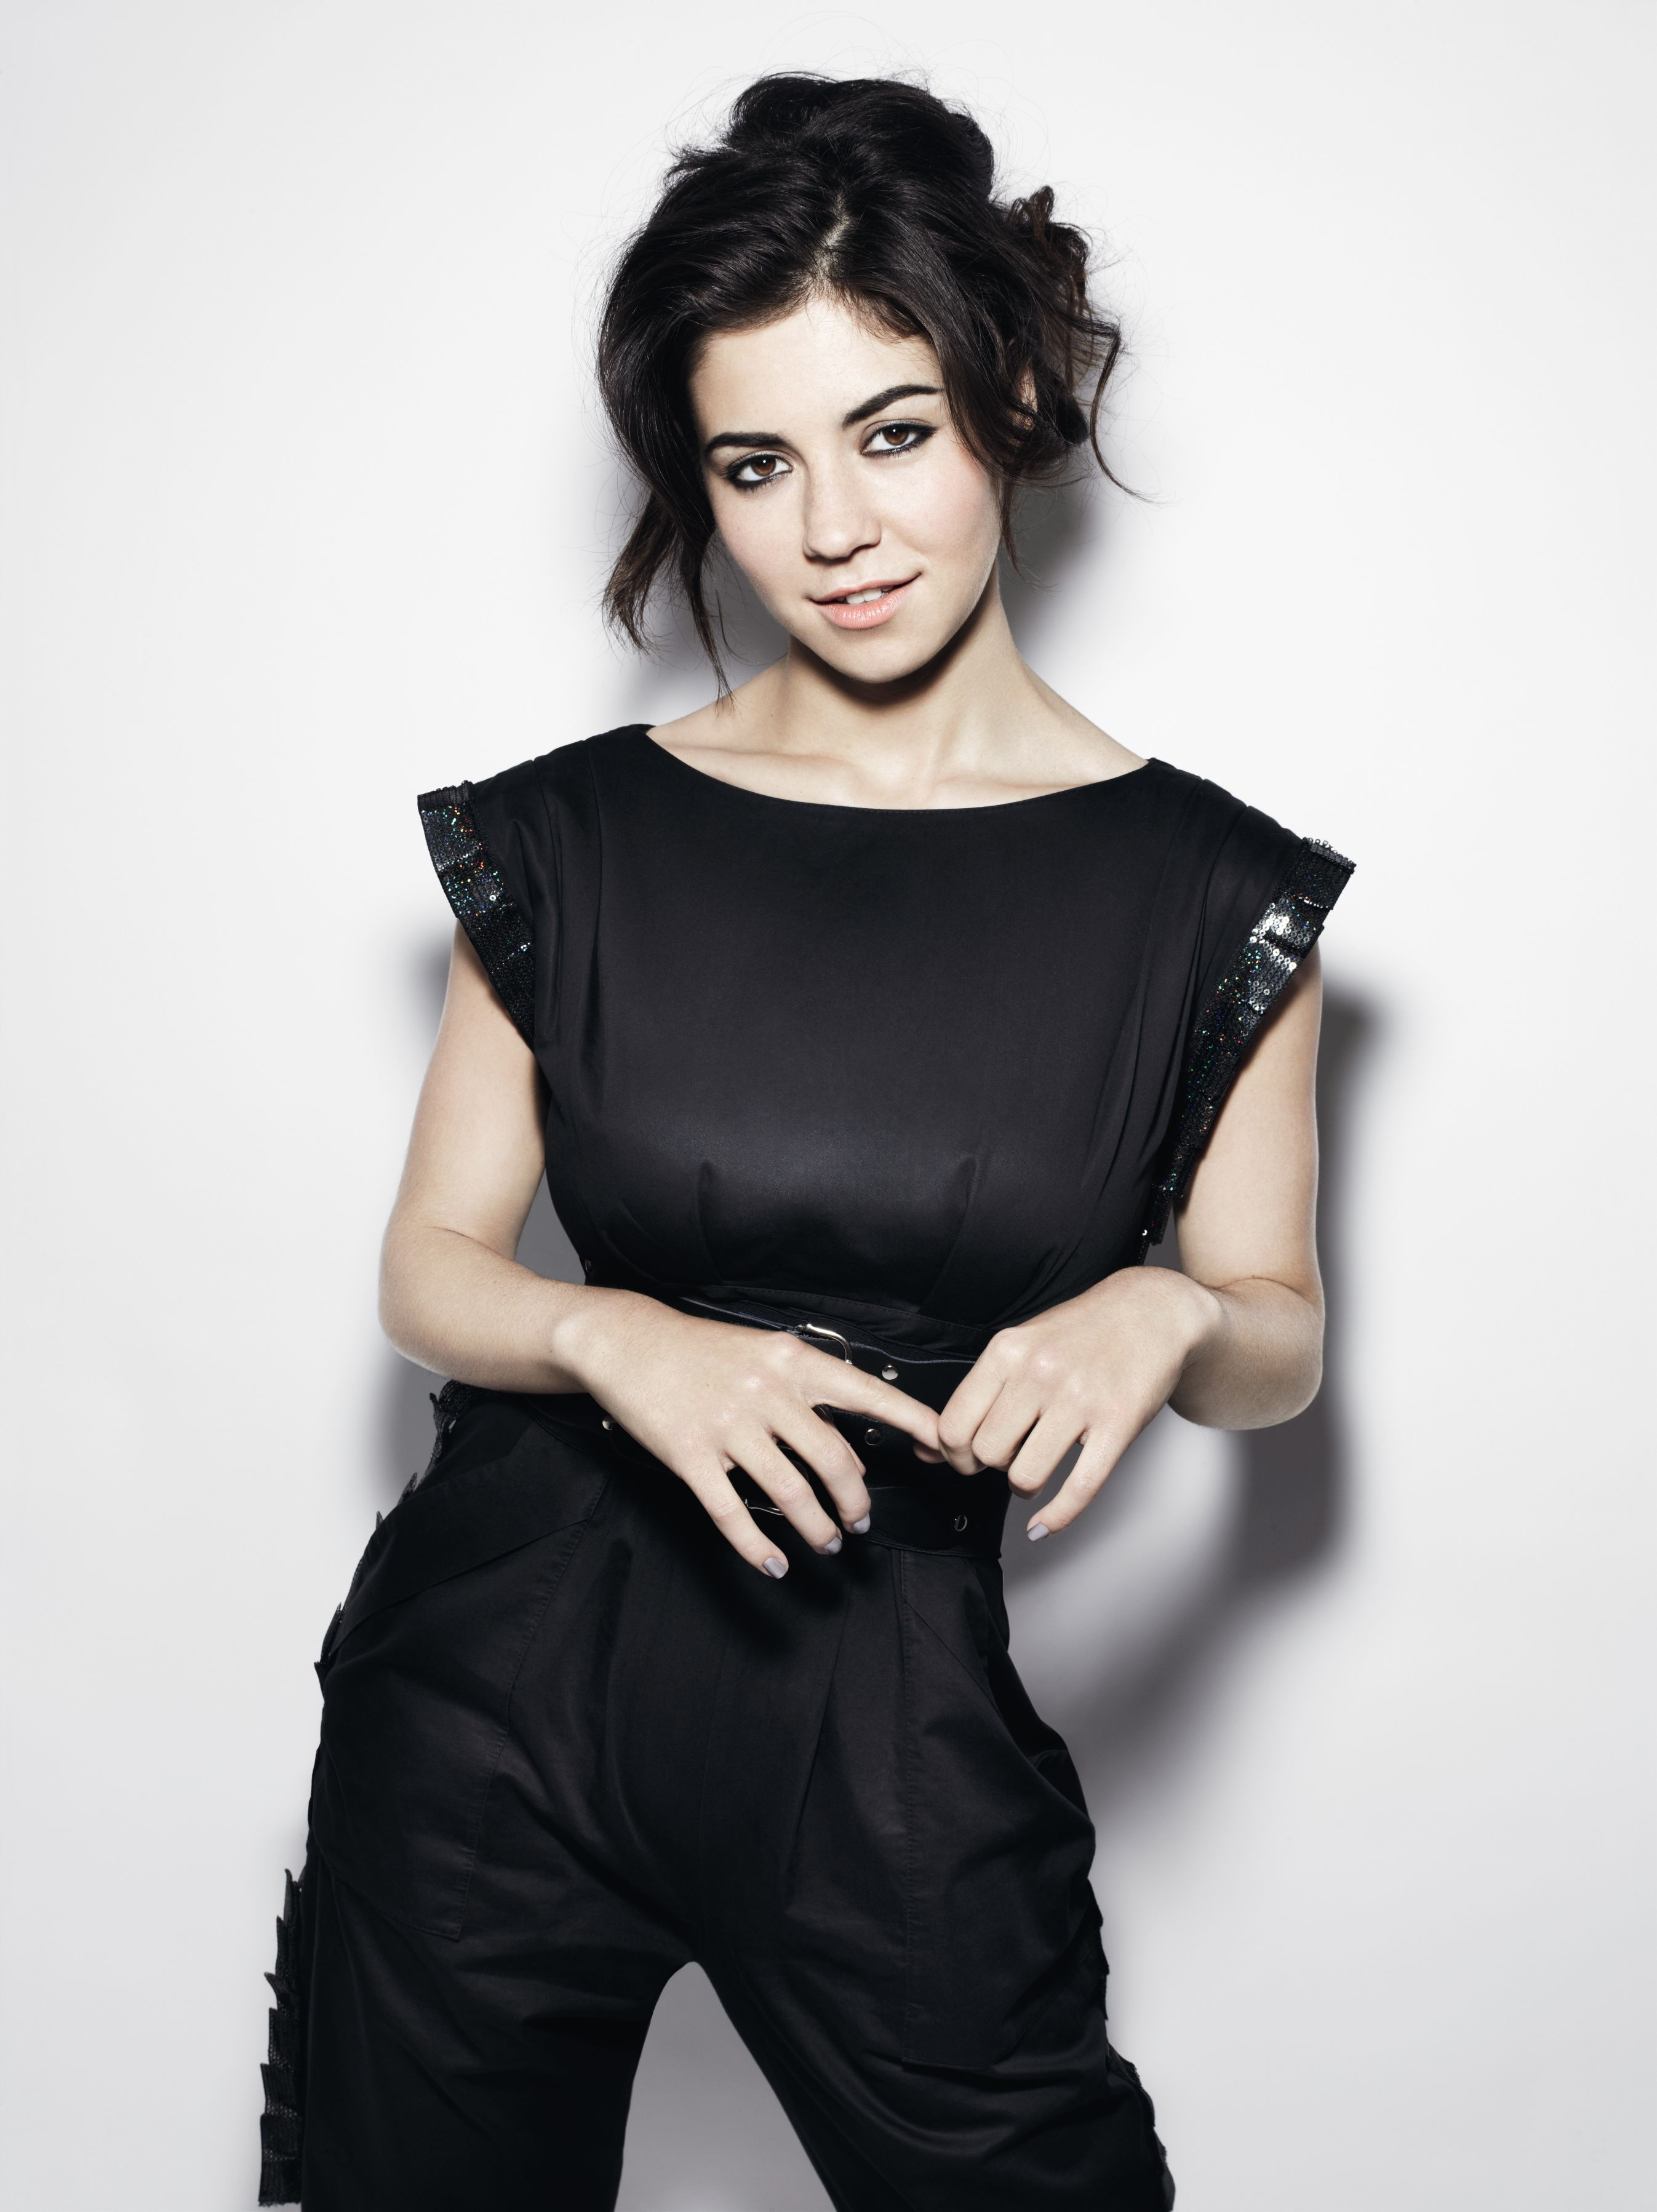 Marina And The Diamonds photo, pics, wallpaper - photo #